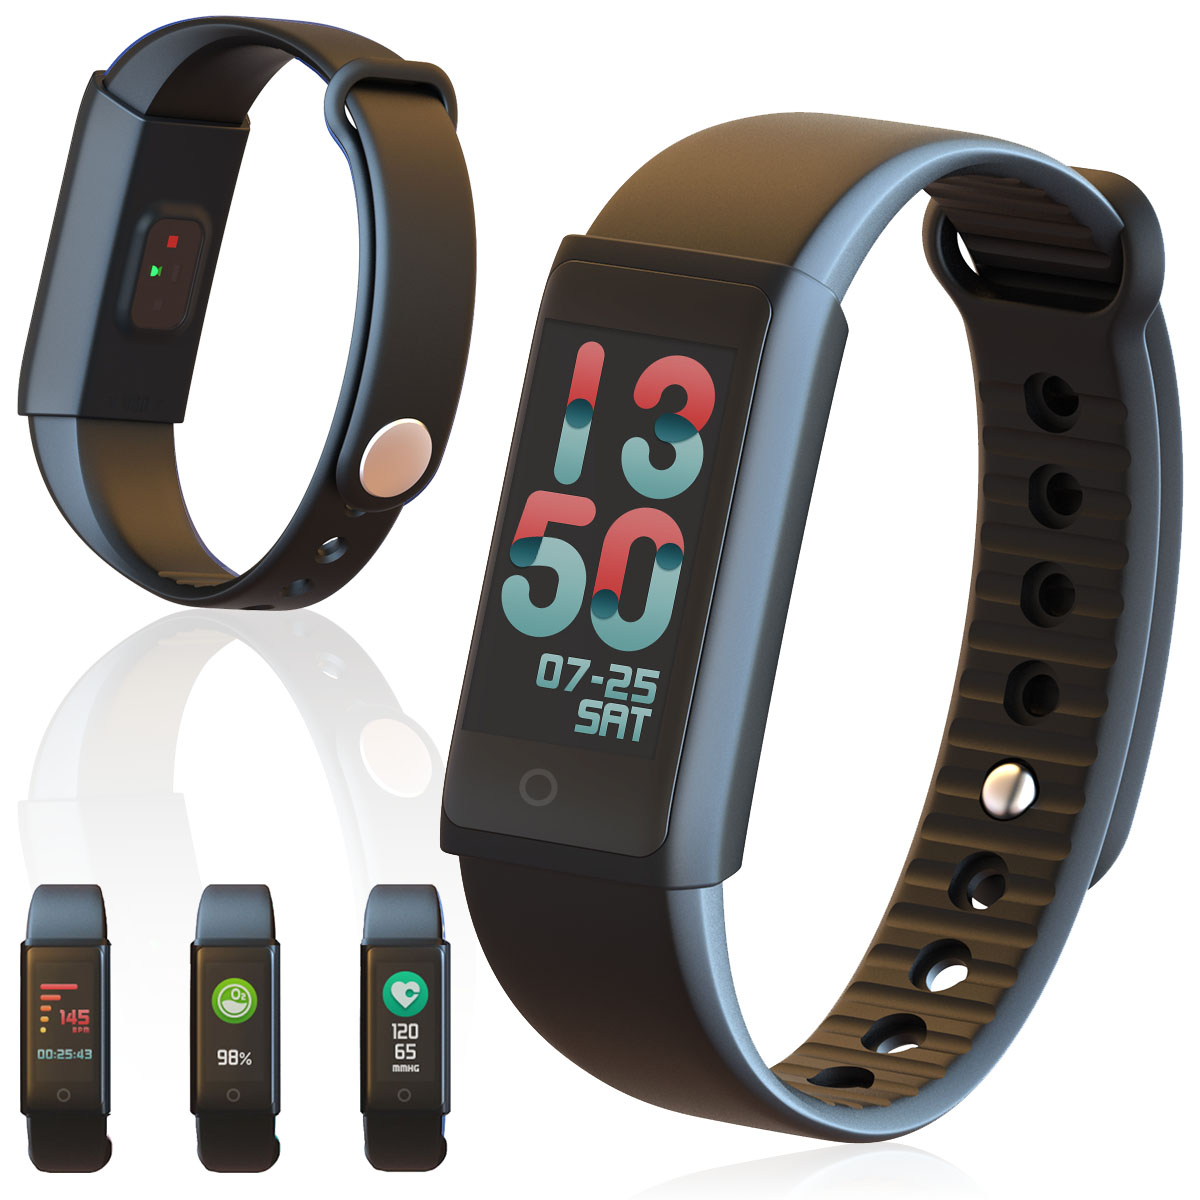 Indigi Waterproof Smart Health Fitness Tracking Bracelet + Heart Rate Sensor, Blood Pressure Monitor, & Pedometer